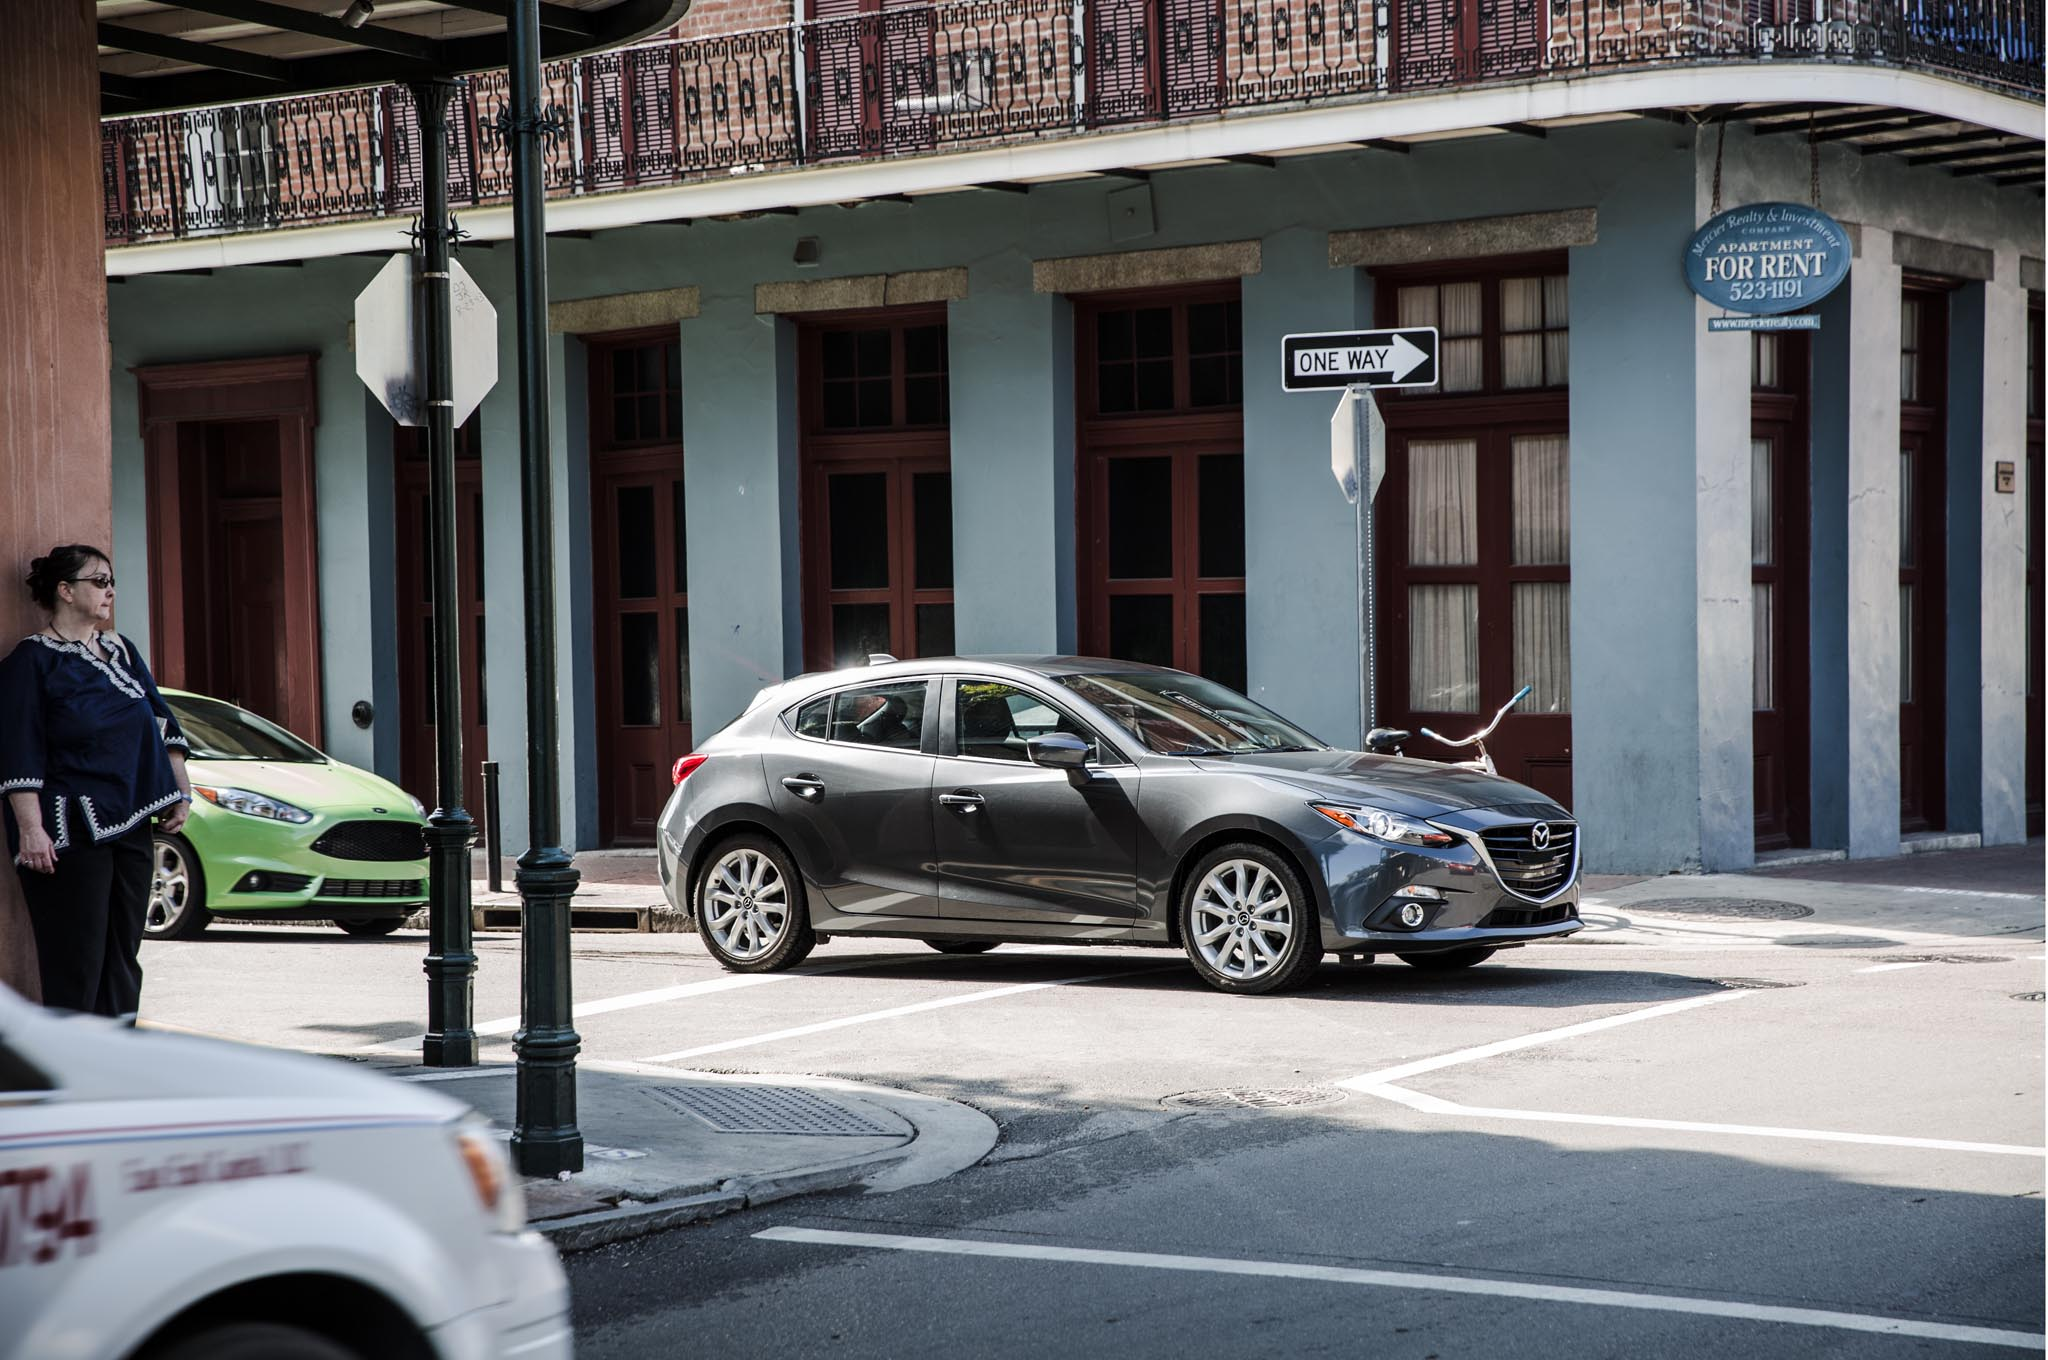 2014 Mazda 3 And Ford Fiesta St New Orleans1